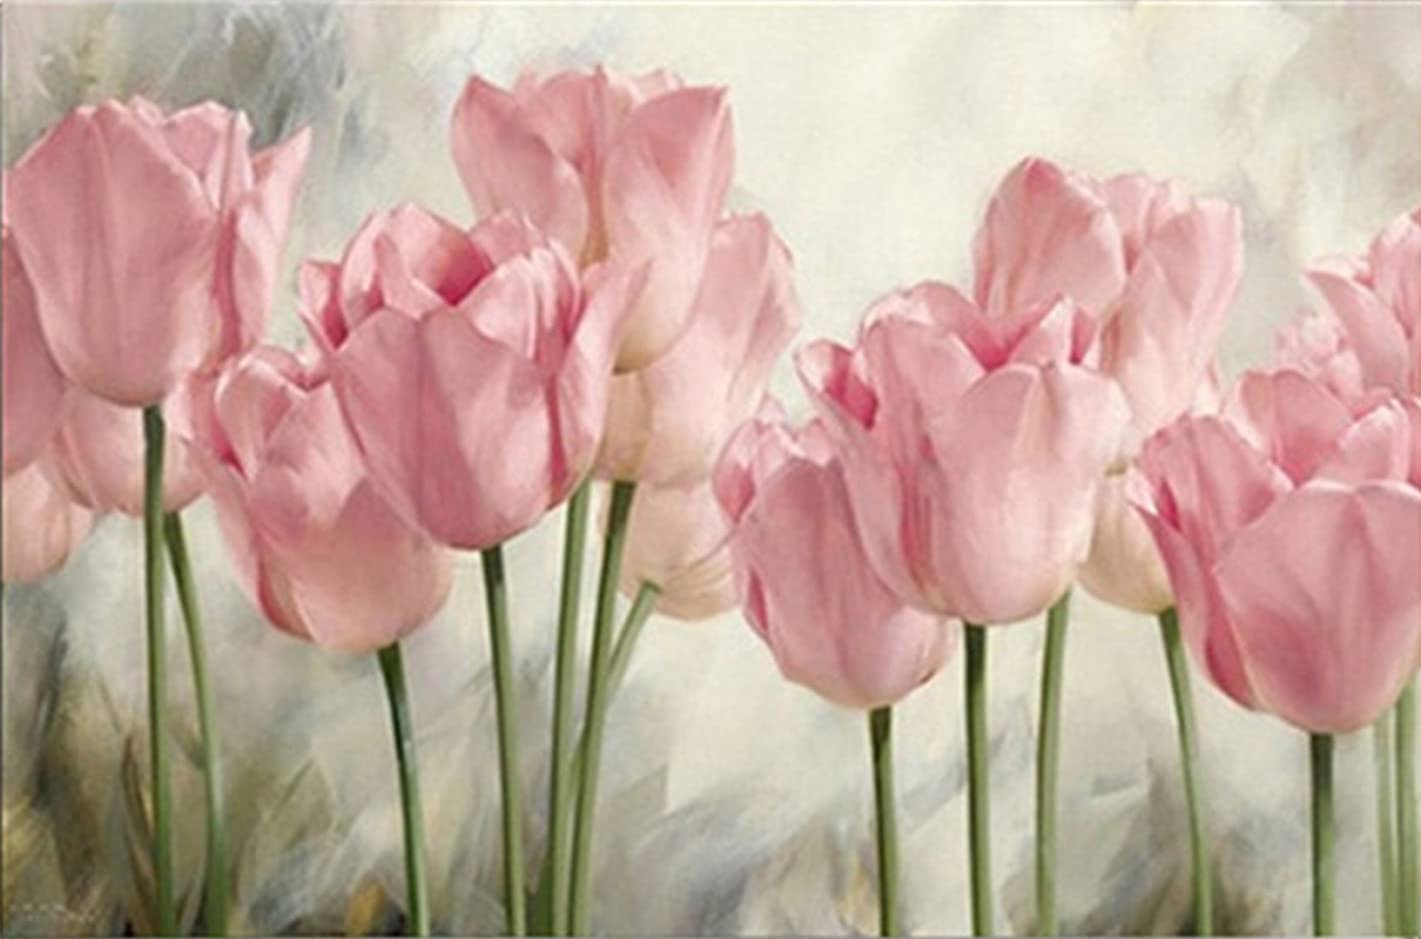 """eGoodn Diamond Painting Art Kit DIY Cross Stitch by Number Kit DIY Arts Craft Wall Decor, Full Drill 19.7"""" by 13.8"""", Pink Tulips, No Frame"""